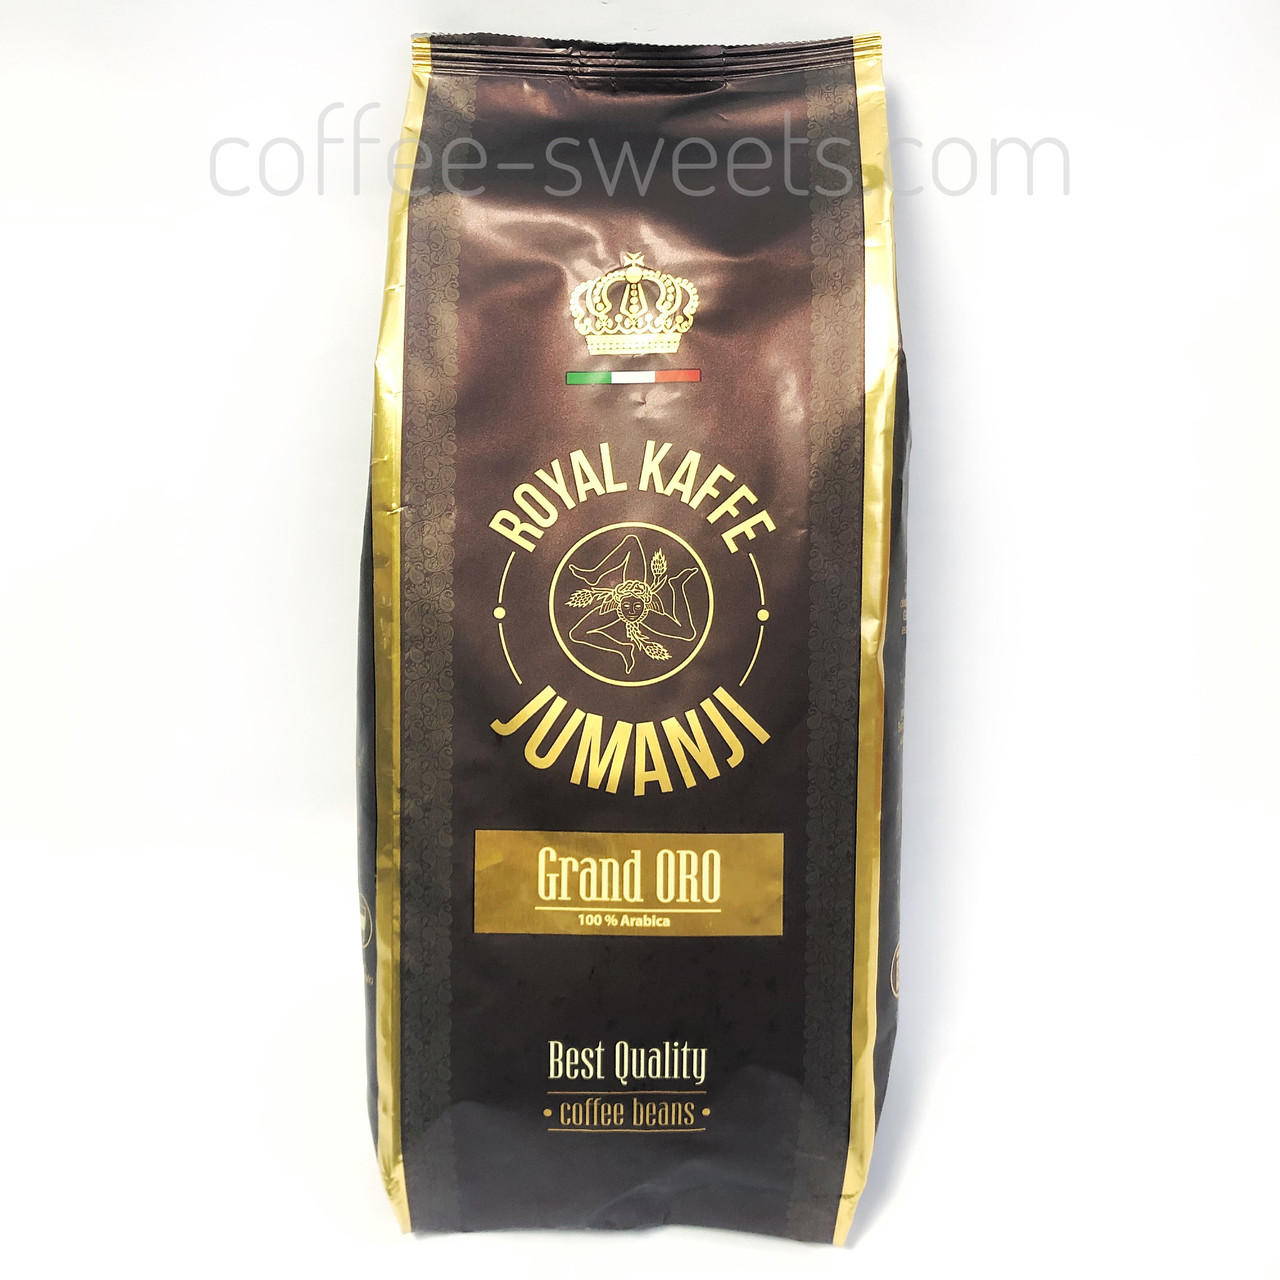 Кофе зерновой Jumanji Royal Kaffe Grand Oro 1kg